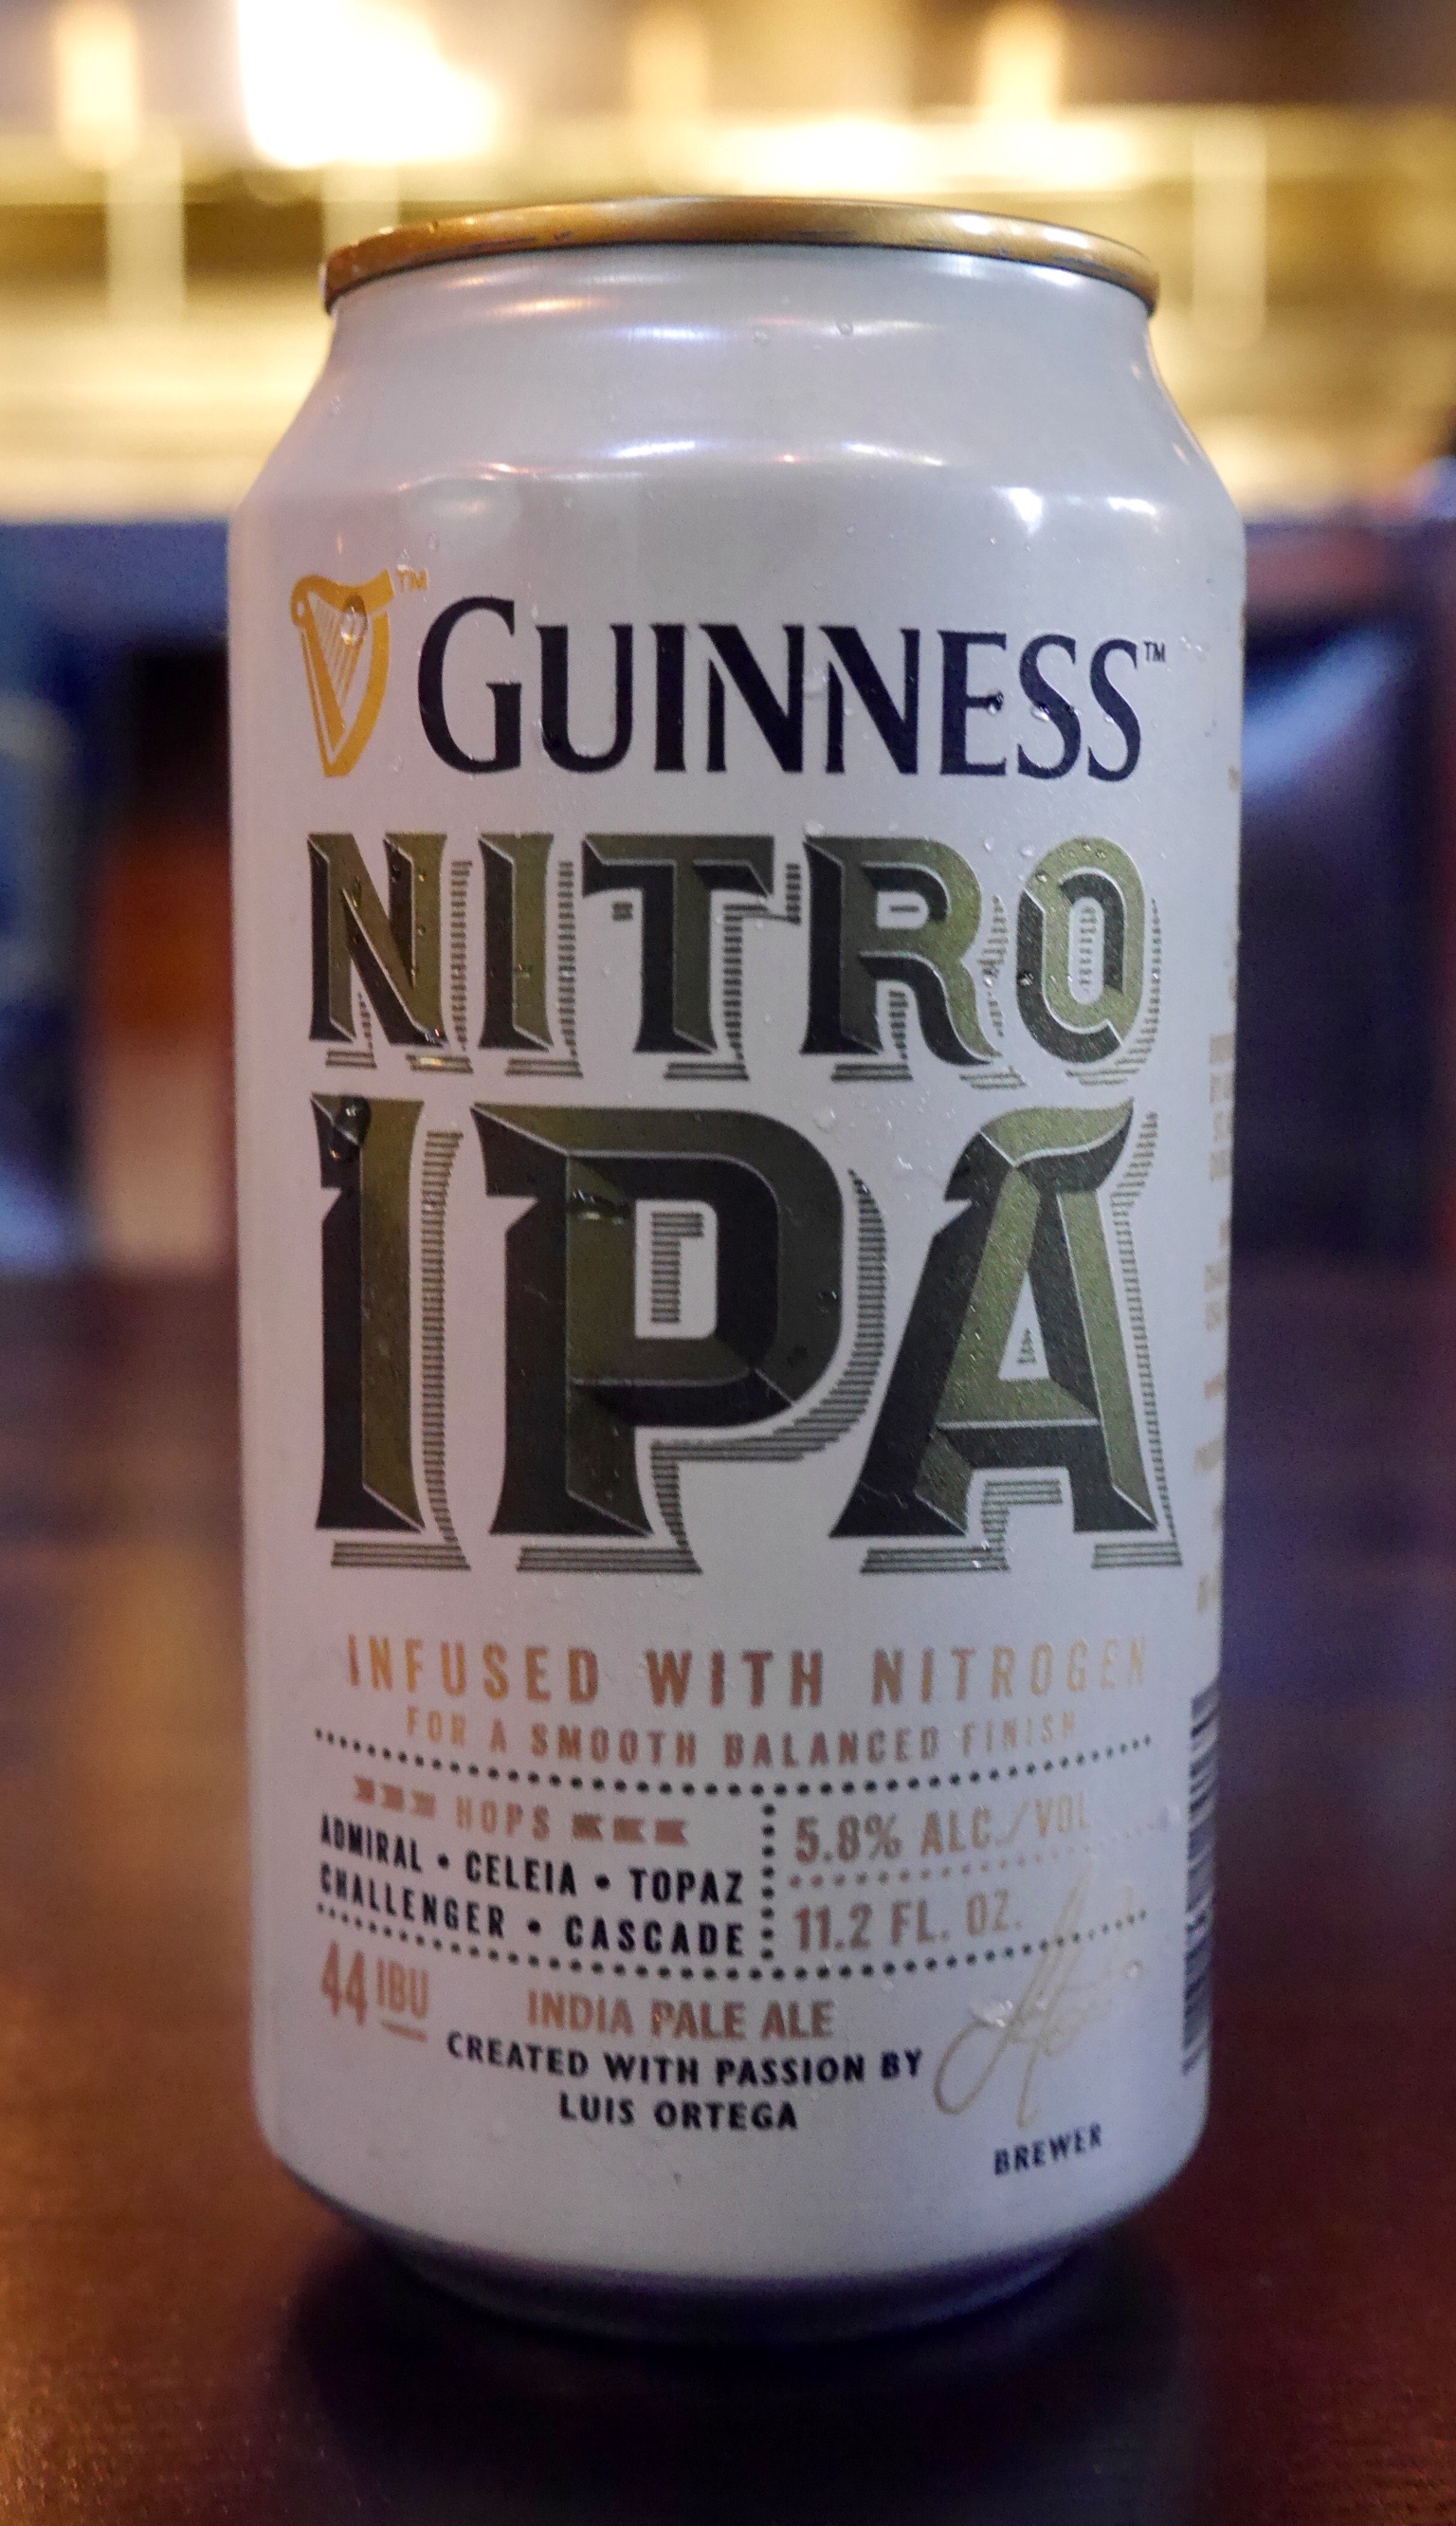 Can of Guinness Nitro IPA (photo by Cat Stelzer)